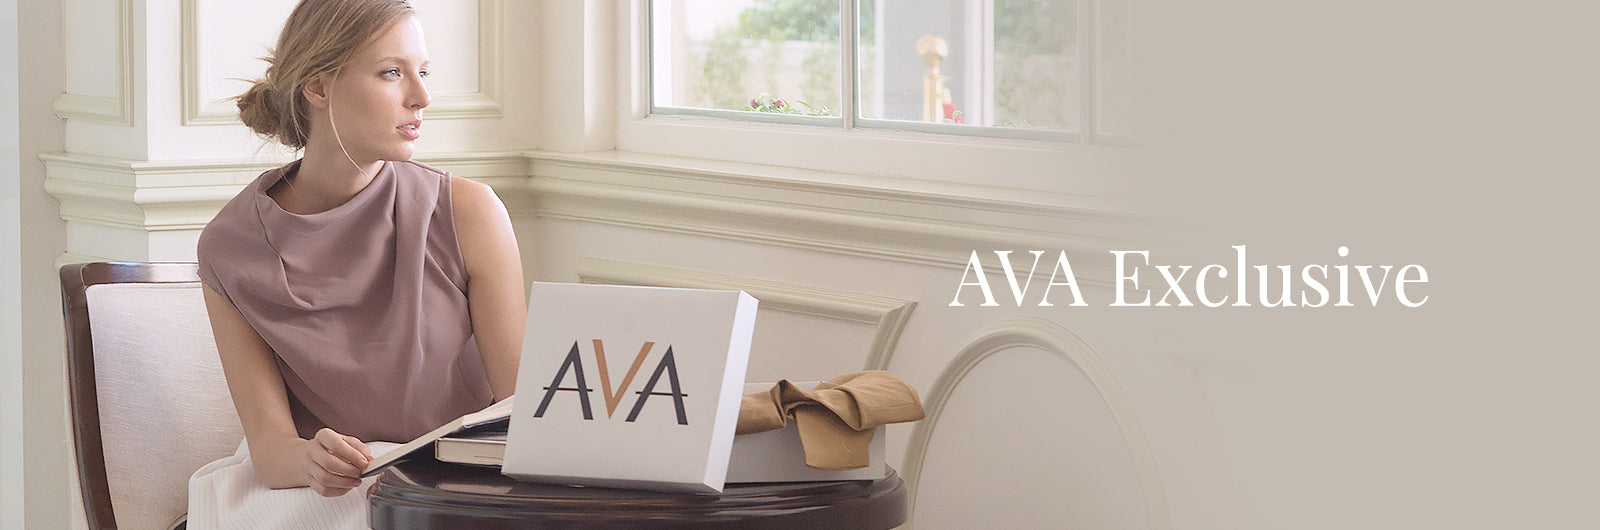 AVA Private Label